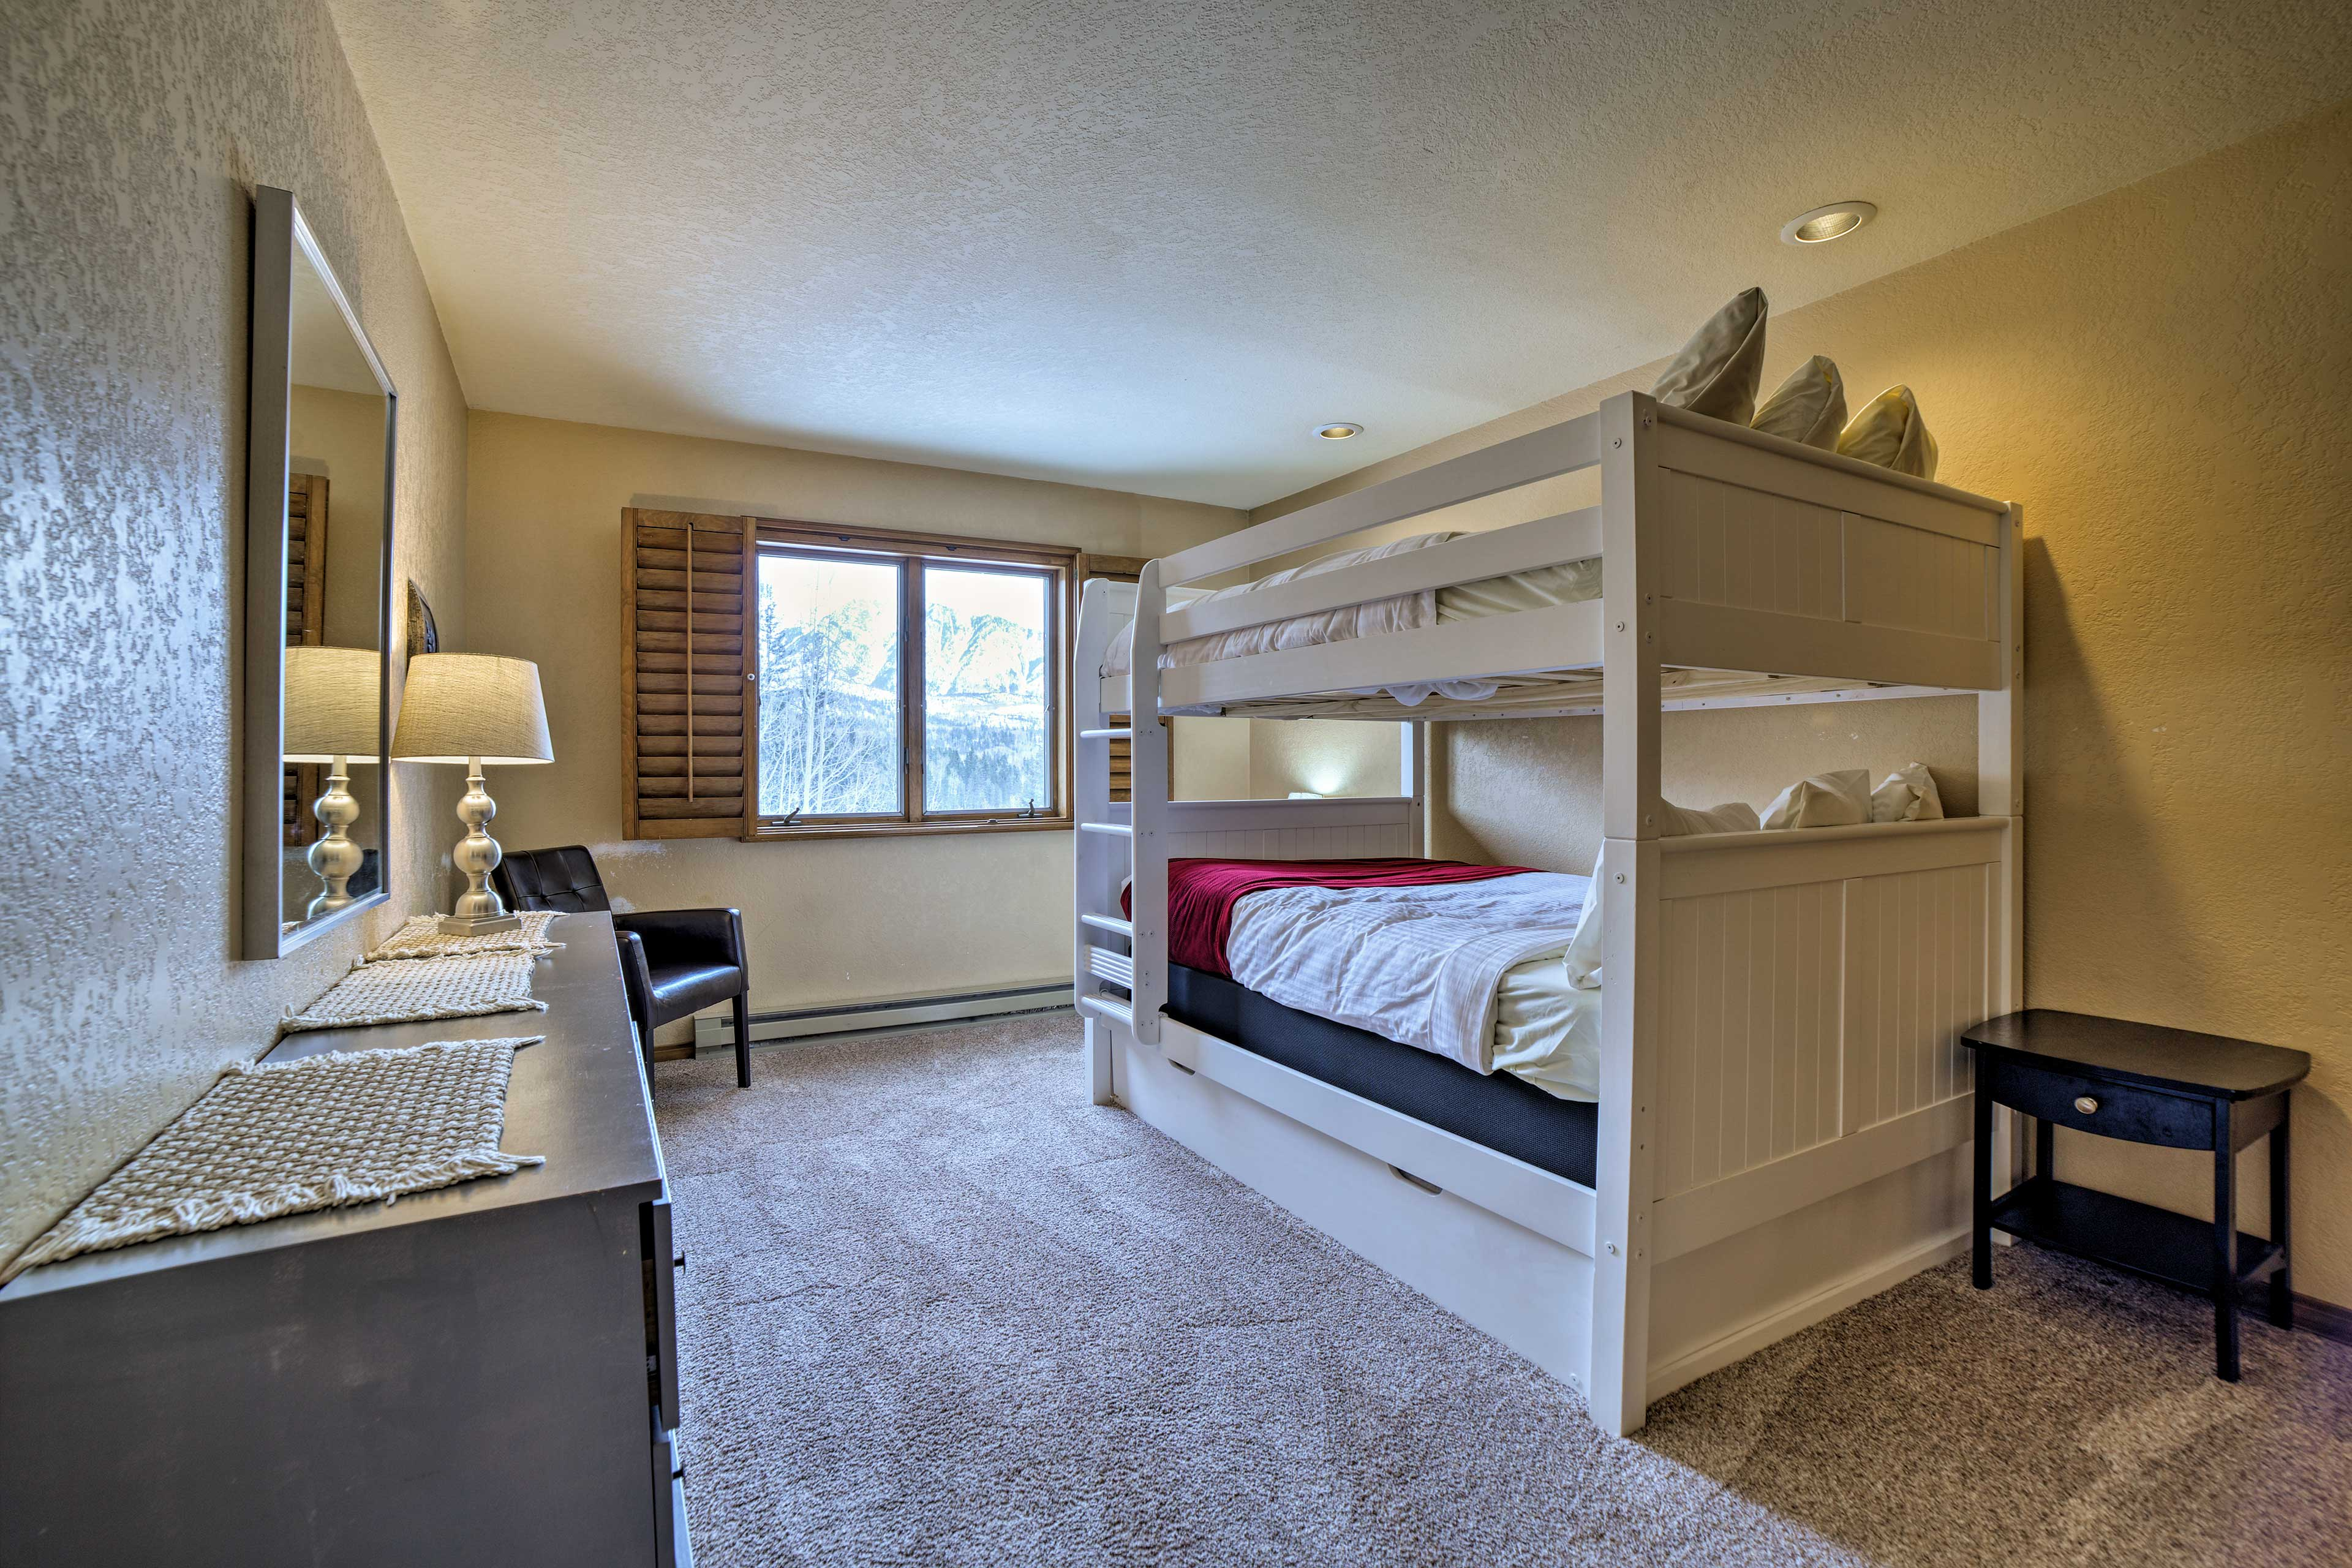 Bedroom 2 | Full Bunk Bed w/ Twin Trundle Bed